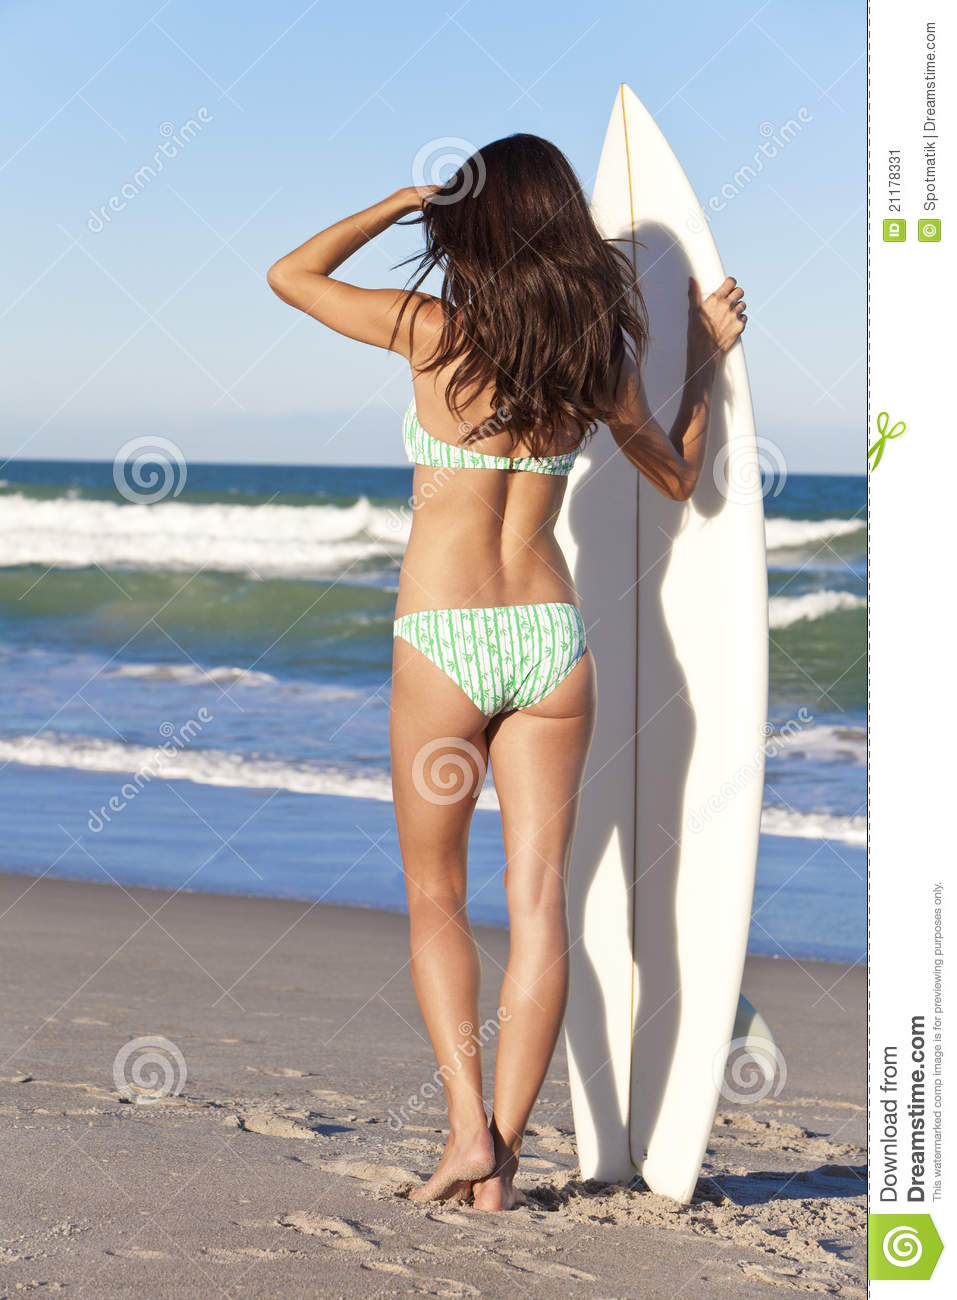 Woman Surfer In Bikini With Surfboard At Beach